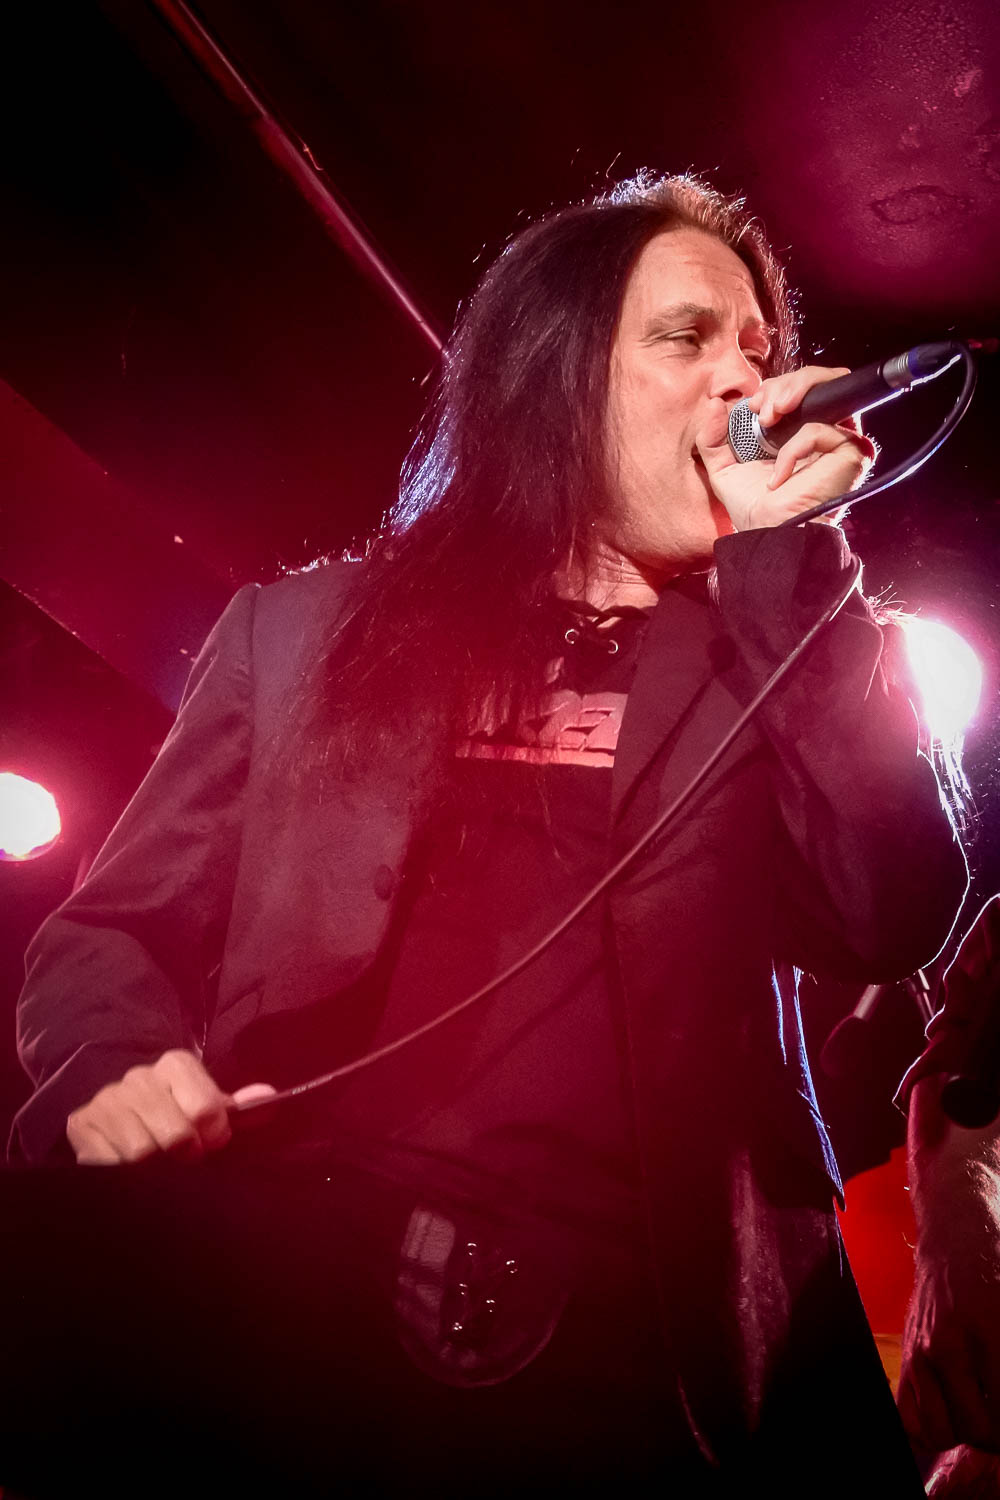 Tyketto at the Academy club in Manchester on March 10th 2019